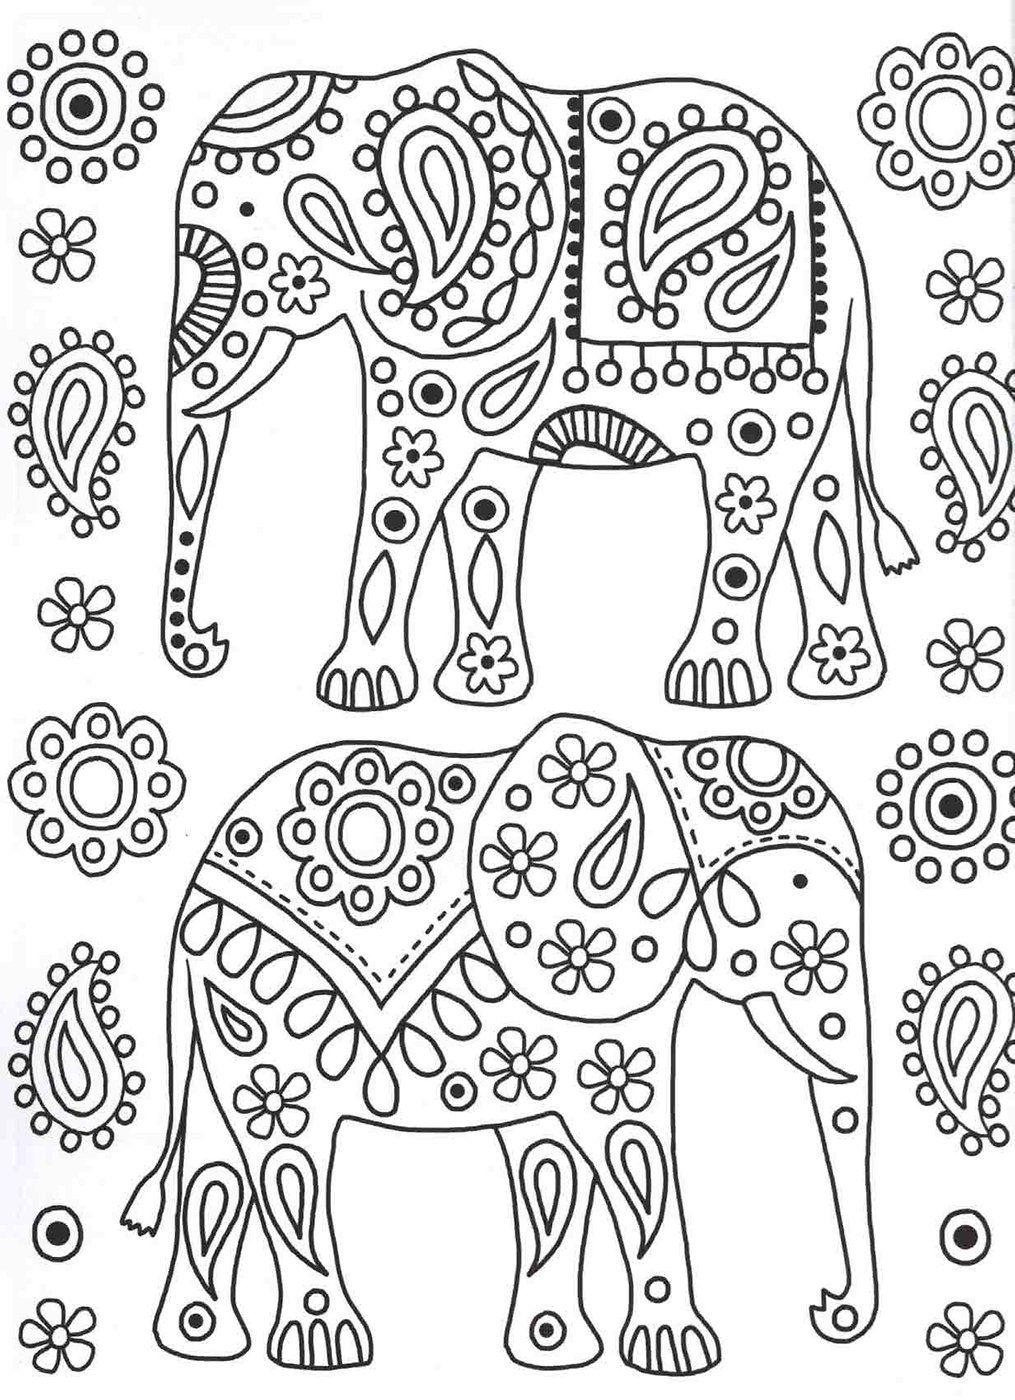 Elephants colouring page | Patterns Colouring Book | coloring ...